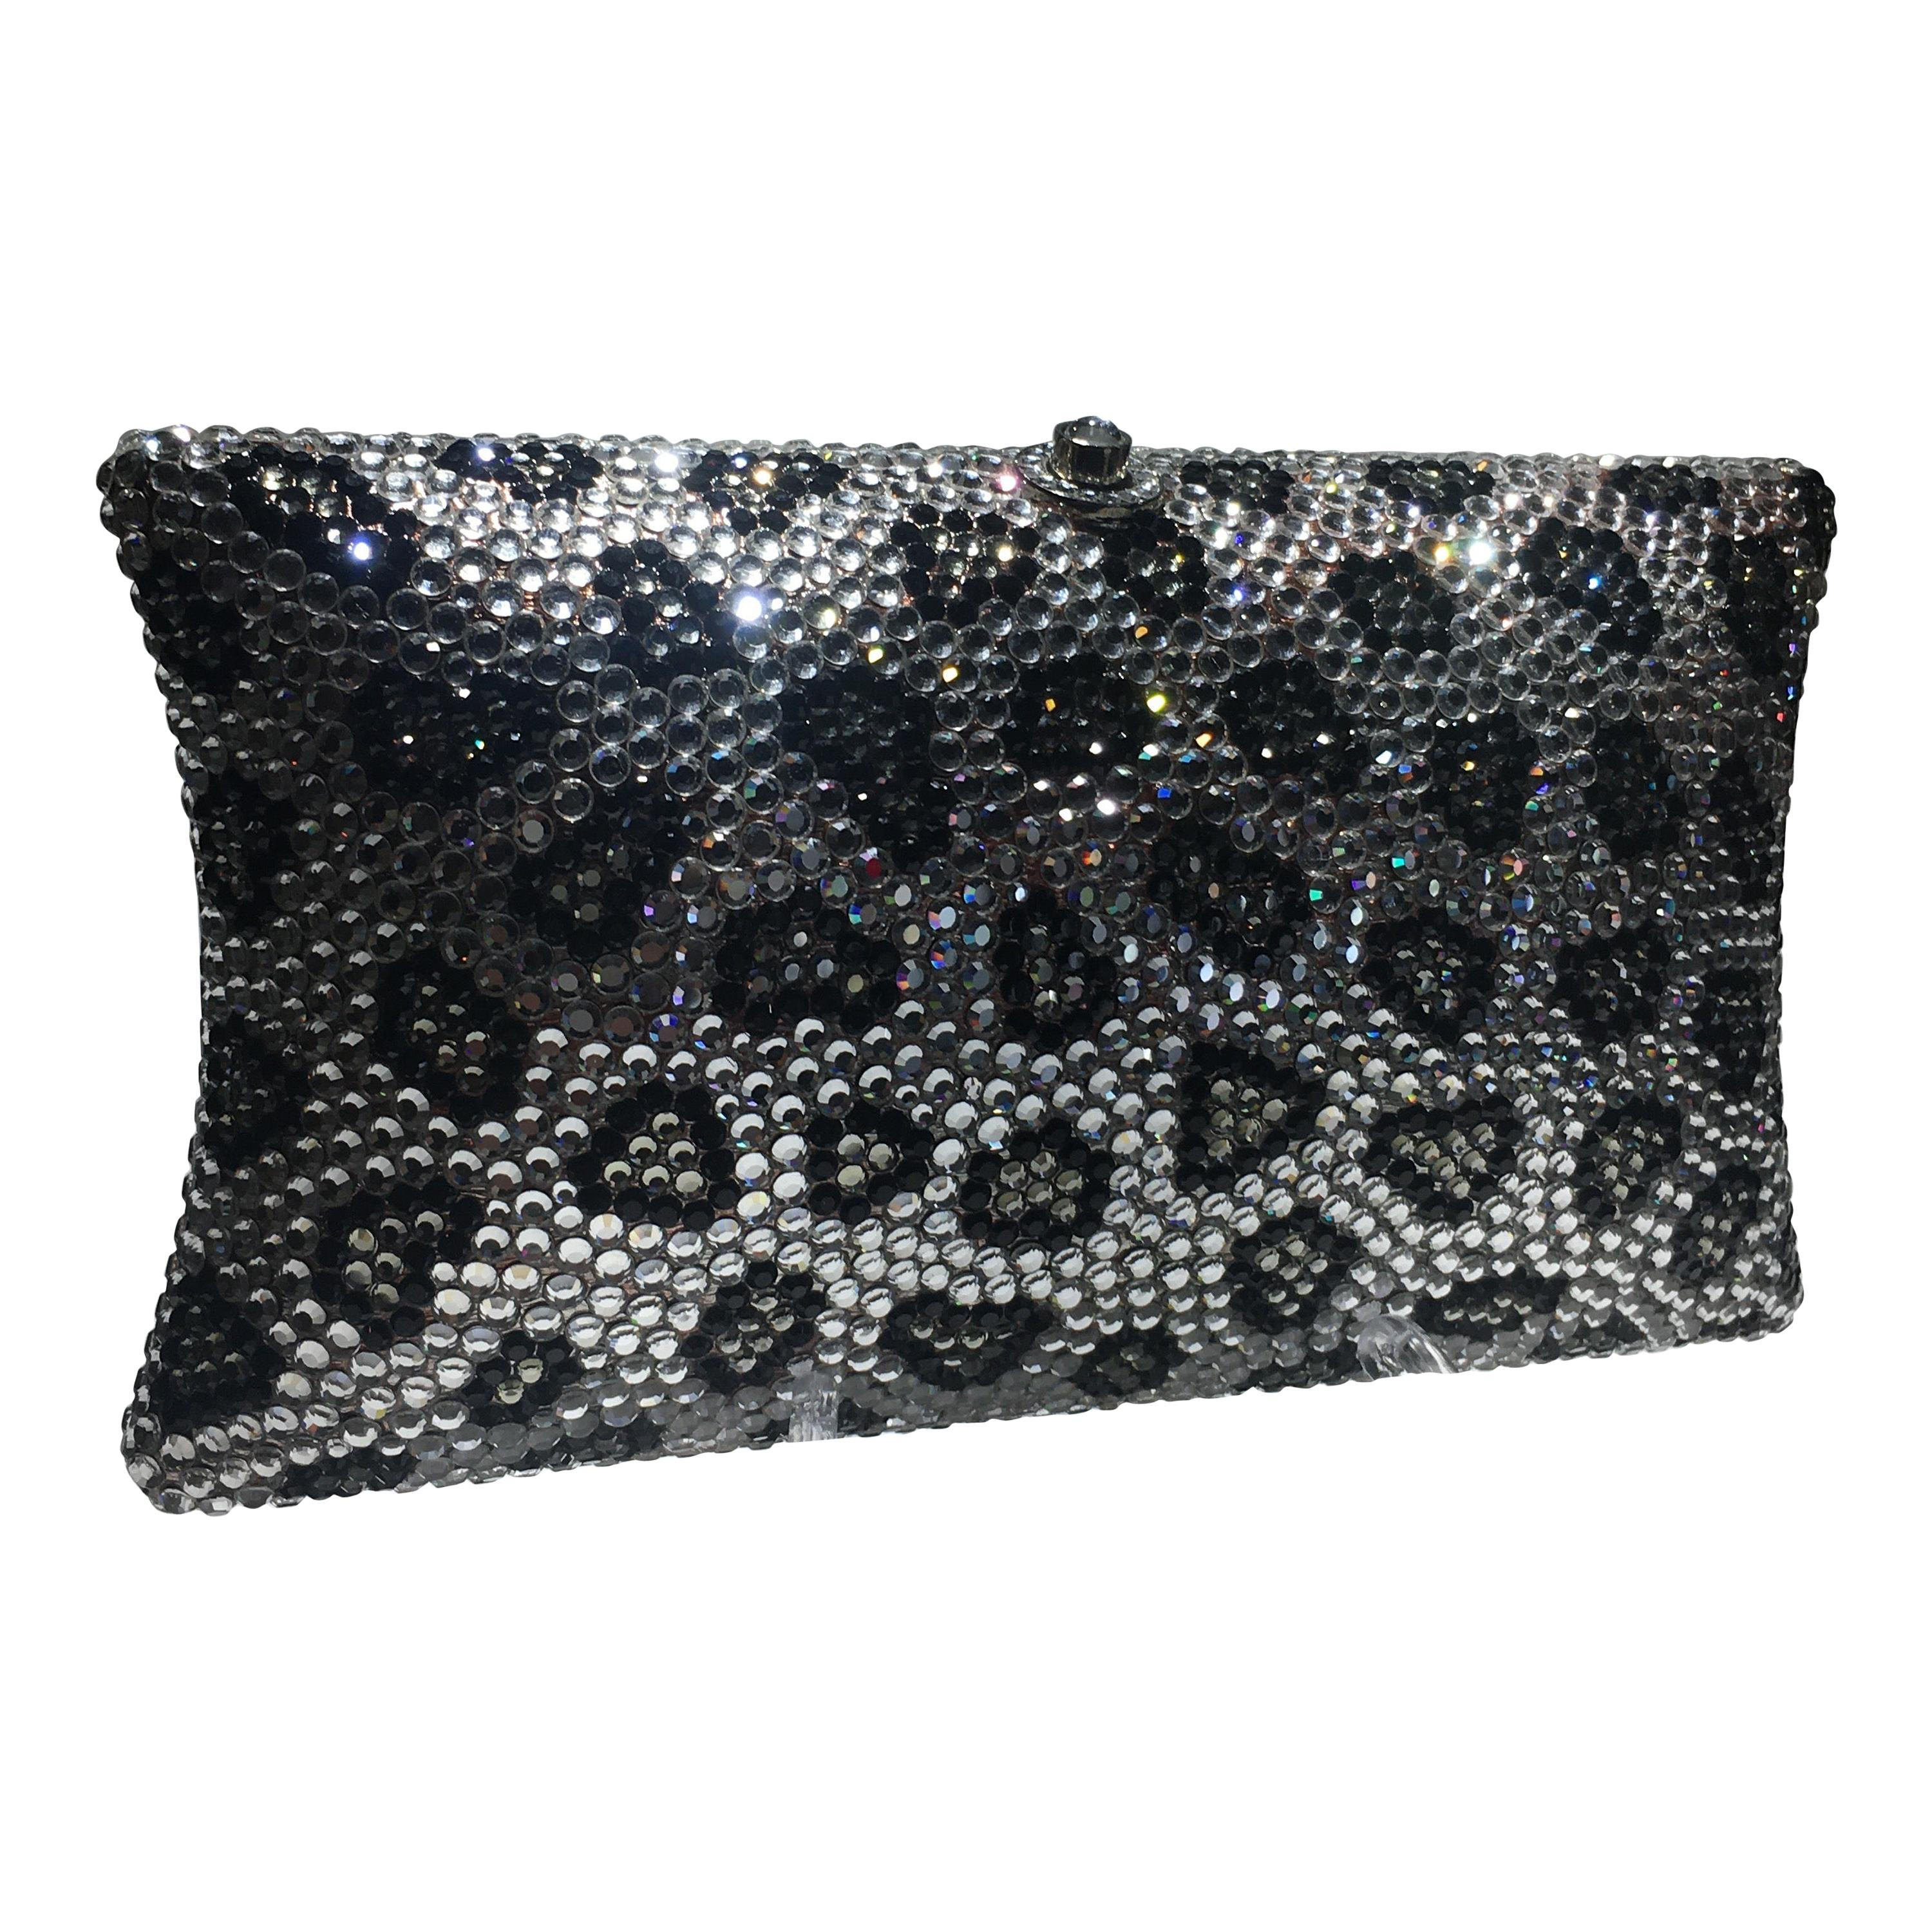 Animal Motif Crystal Clutch In The Style Of Judith Leiber, Great Condition.